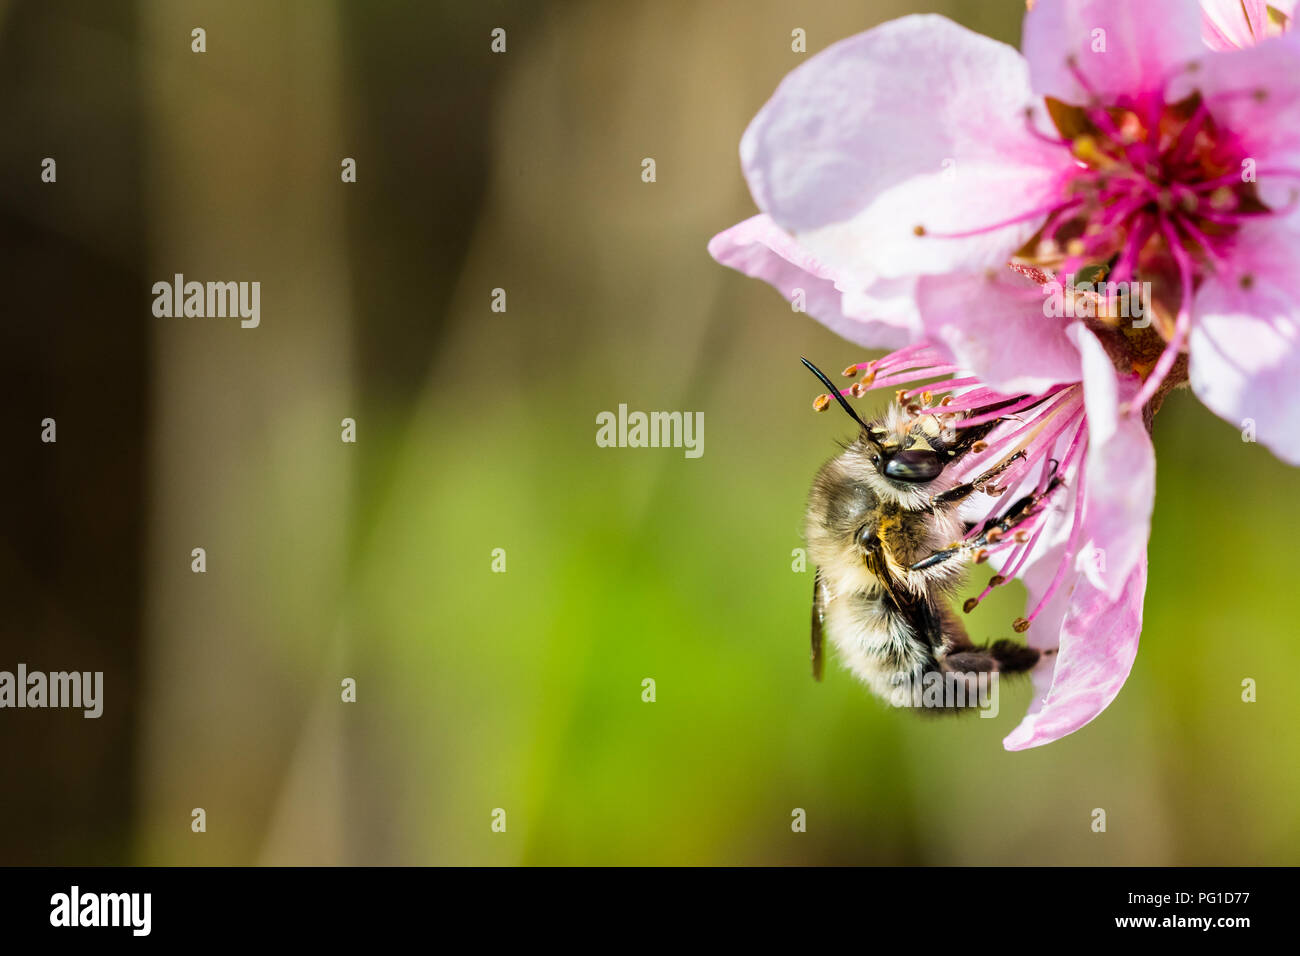 A hard working  bee pollinating a pink flower in a spring. Beautiful macro shot with shallow depth of field and blurred background. - Stock Image